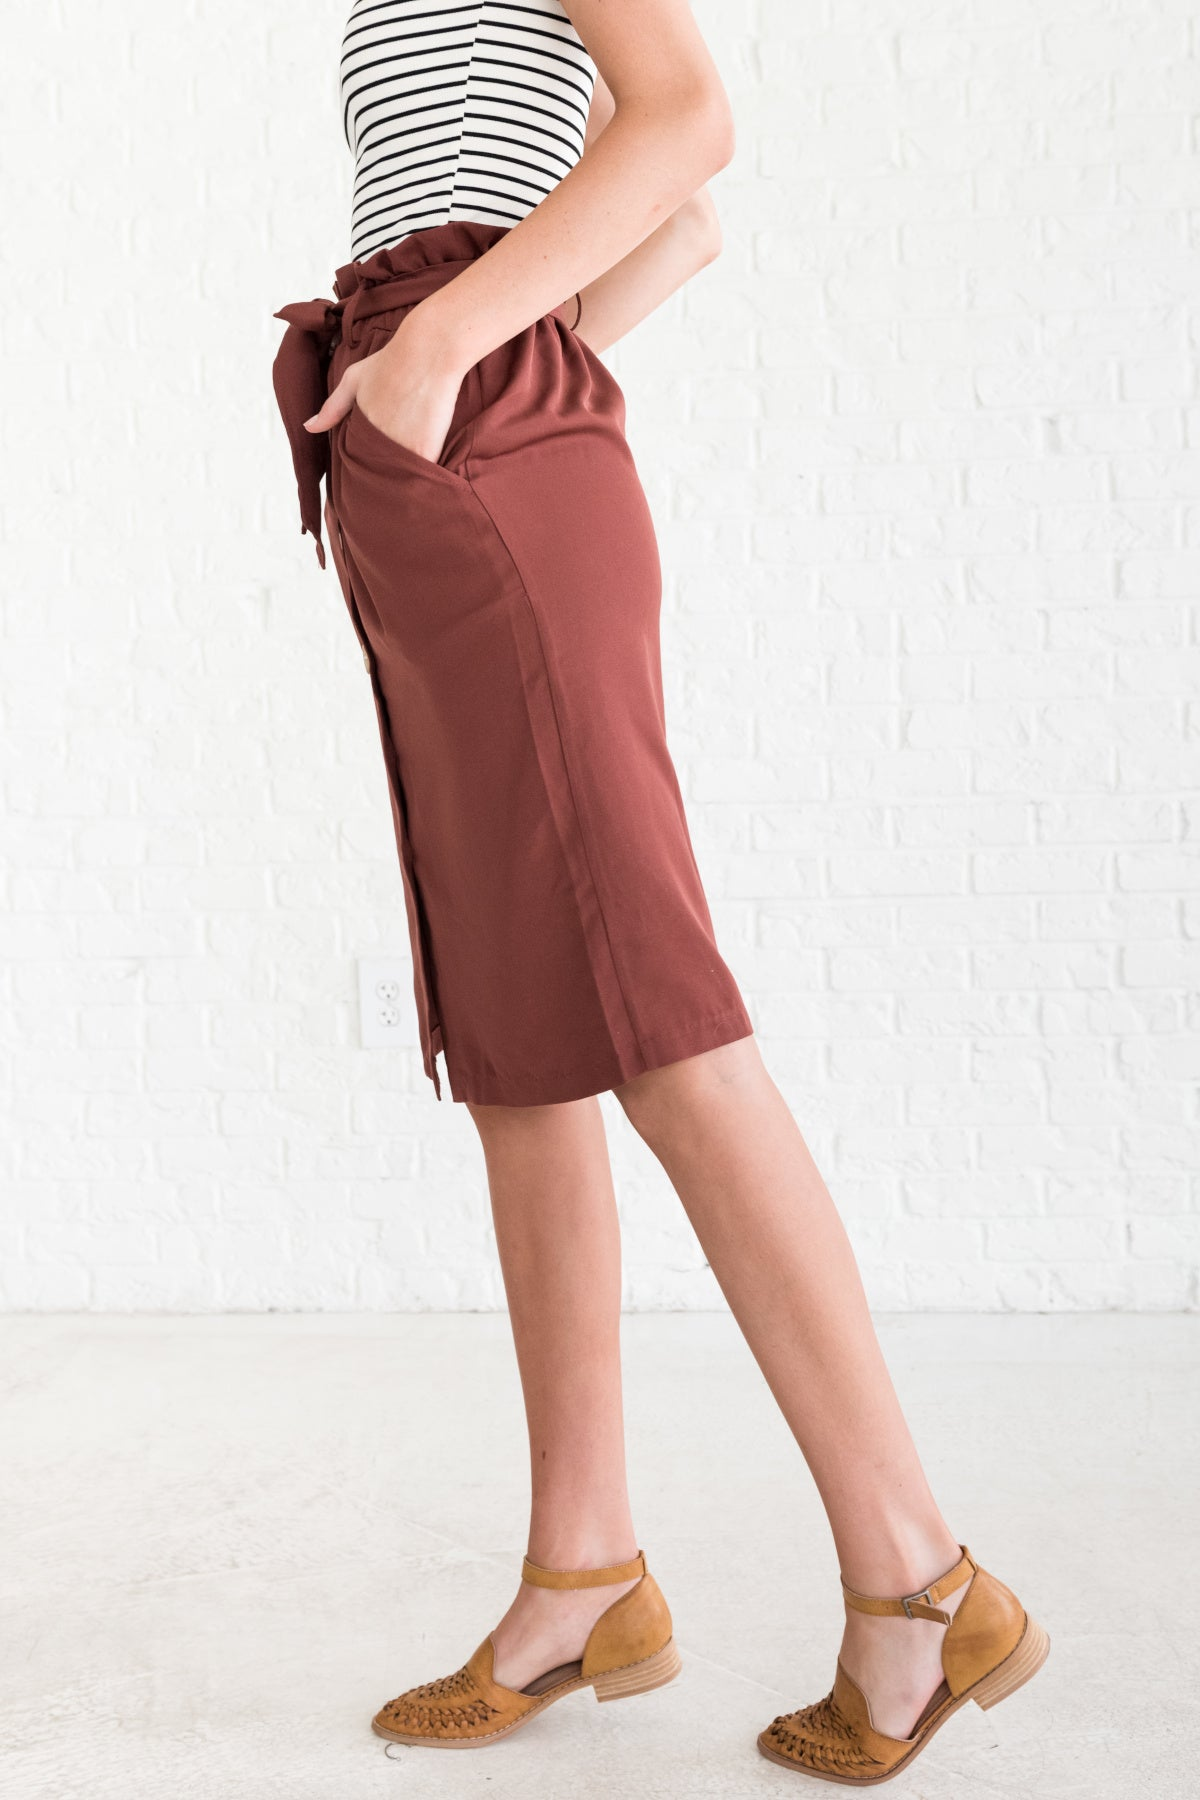 d940f7c2d5518 Trend-Setter Brick Red Knee-Length Skirt | Red Button-Up Skirts